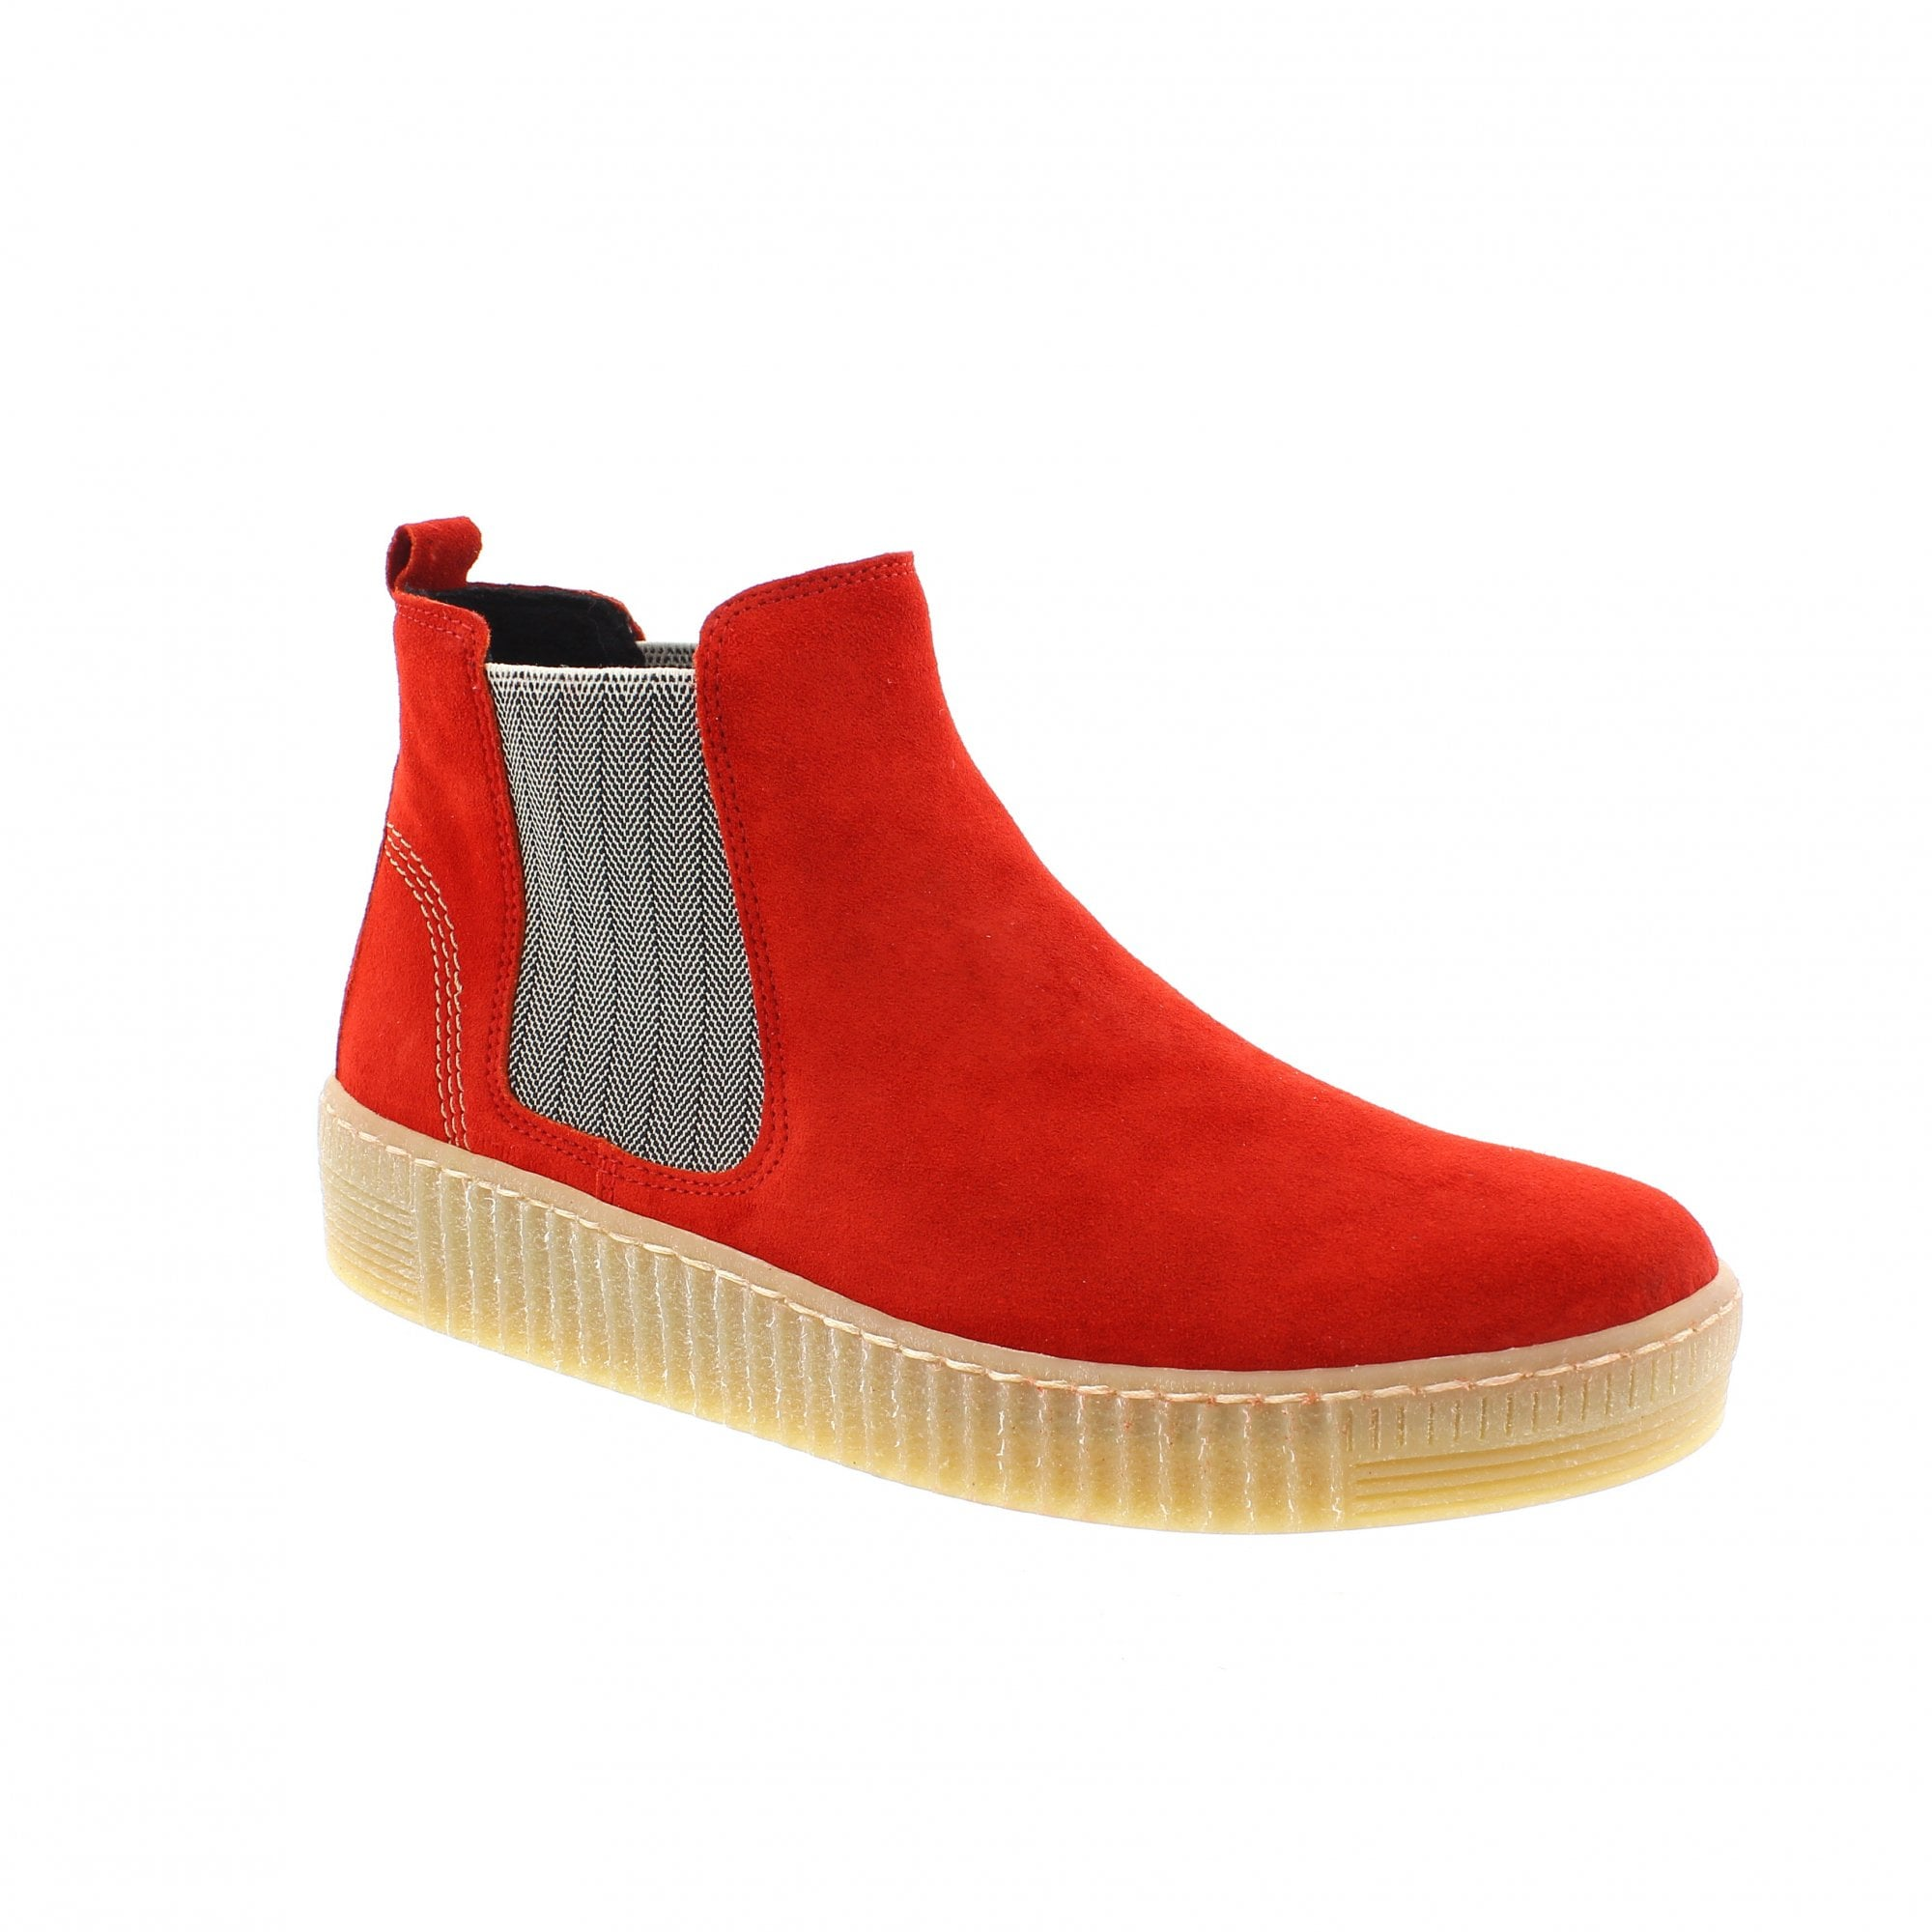 Gabor Lourdes Red Suede Ankle Boots 33